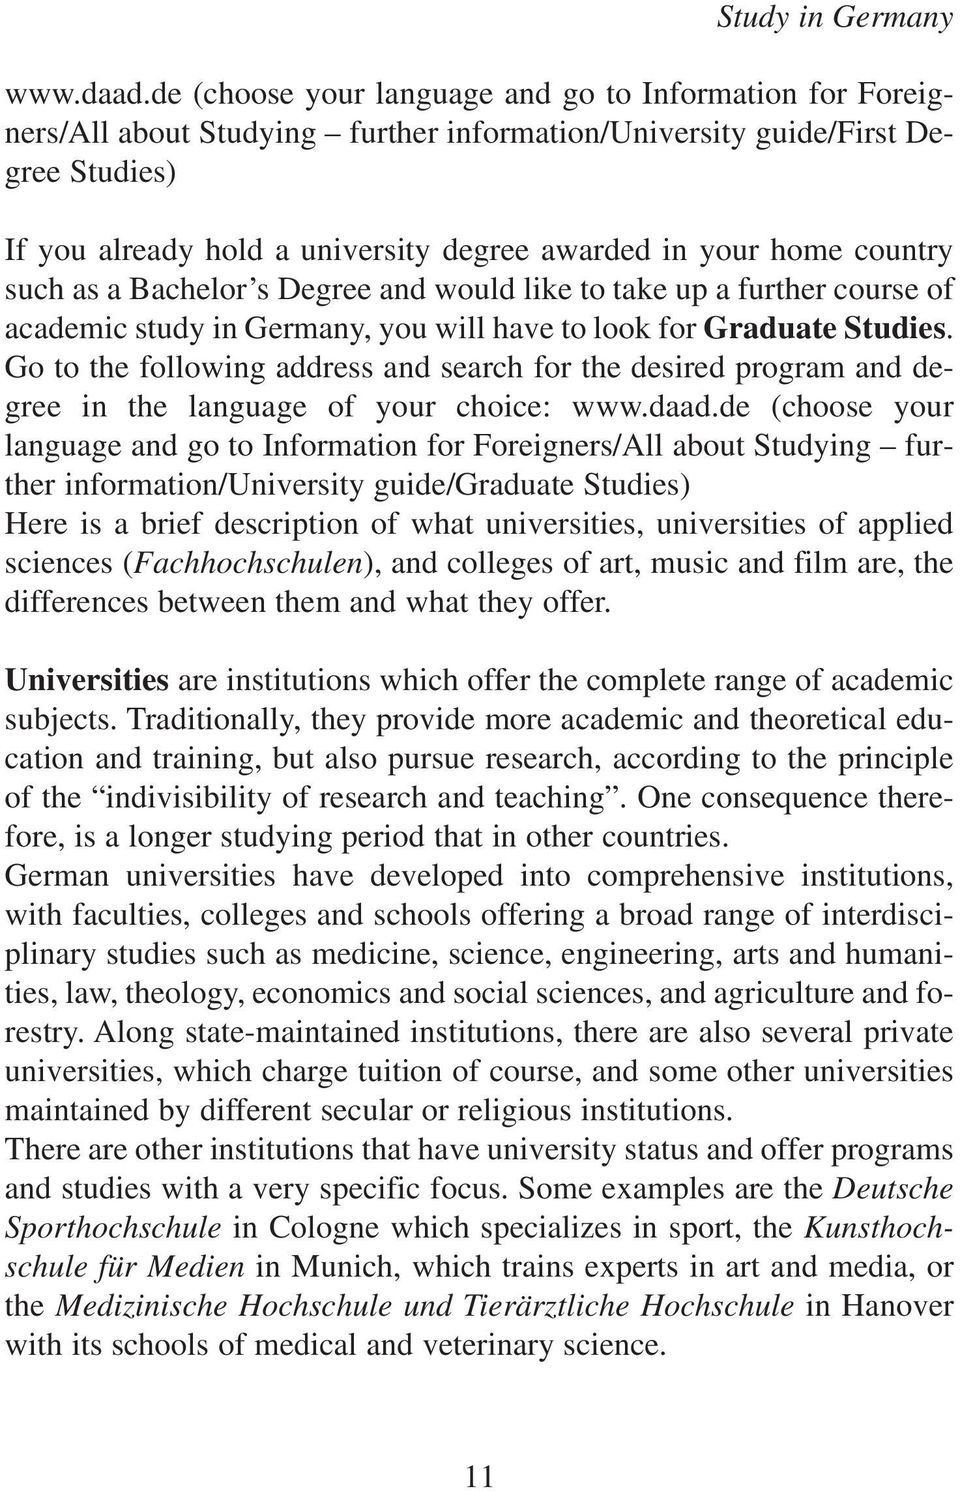 home country such as a Bachelor s Degree and would like to take up a further course of academic study in Germany, you will have to look for Graduate Studies.